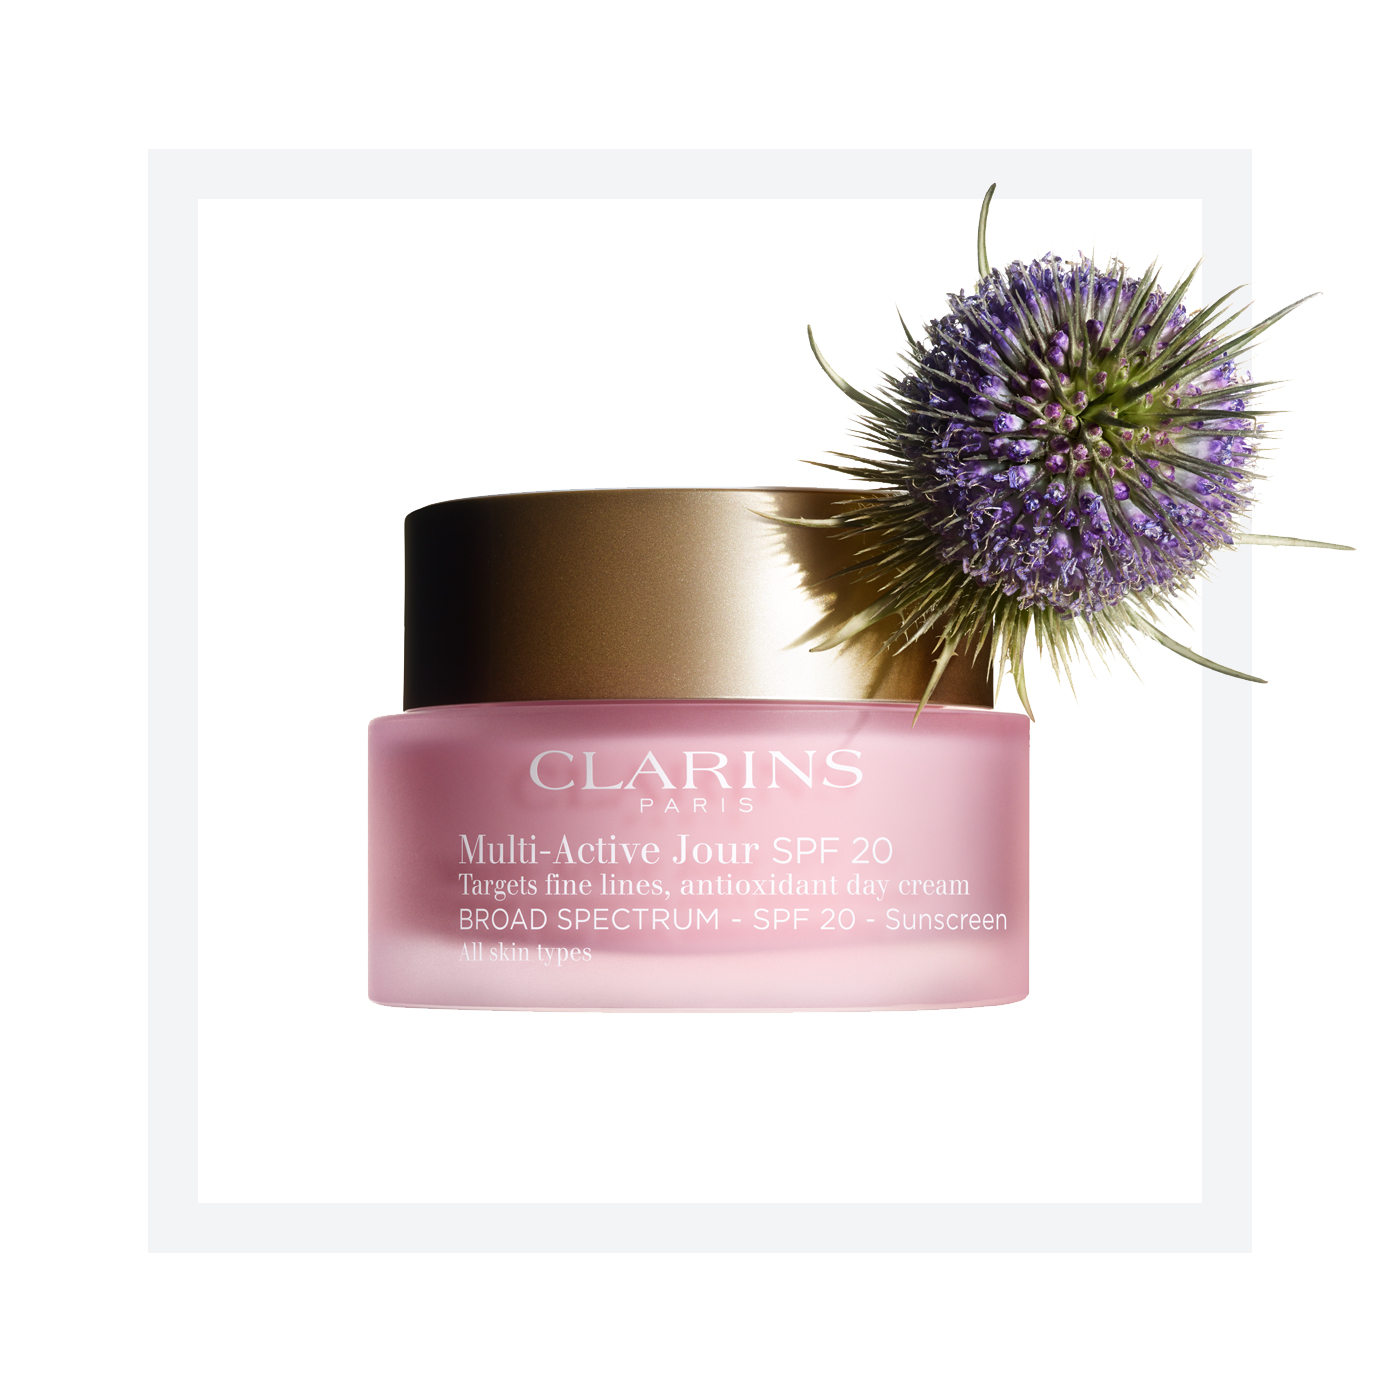 Clarins Multi-Active Day Day Cream with SPF 20 for All Skin Types - 1.7  Oz Fresh Black Tea Age-Delay Infusion 4oz (120ml)